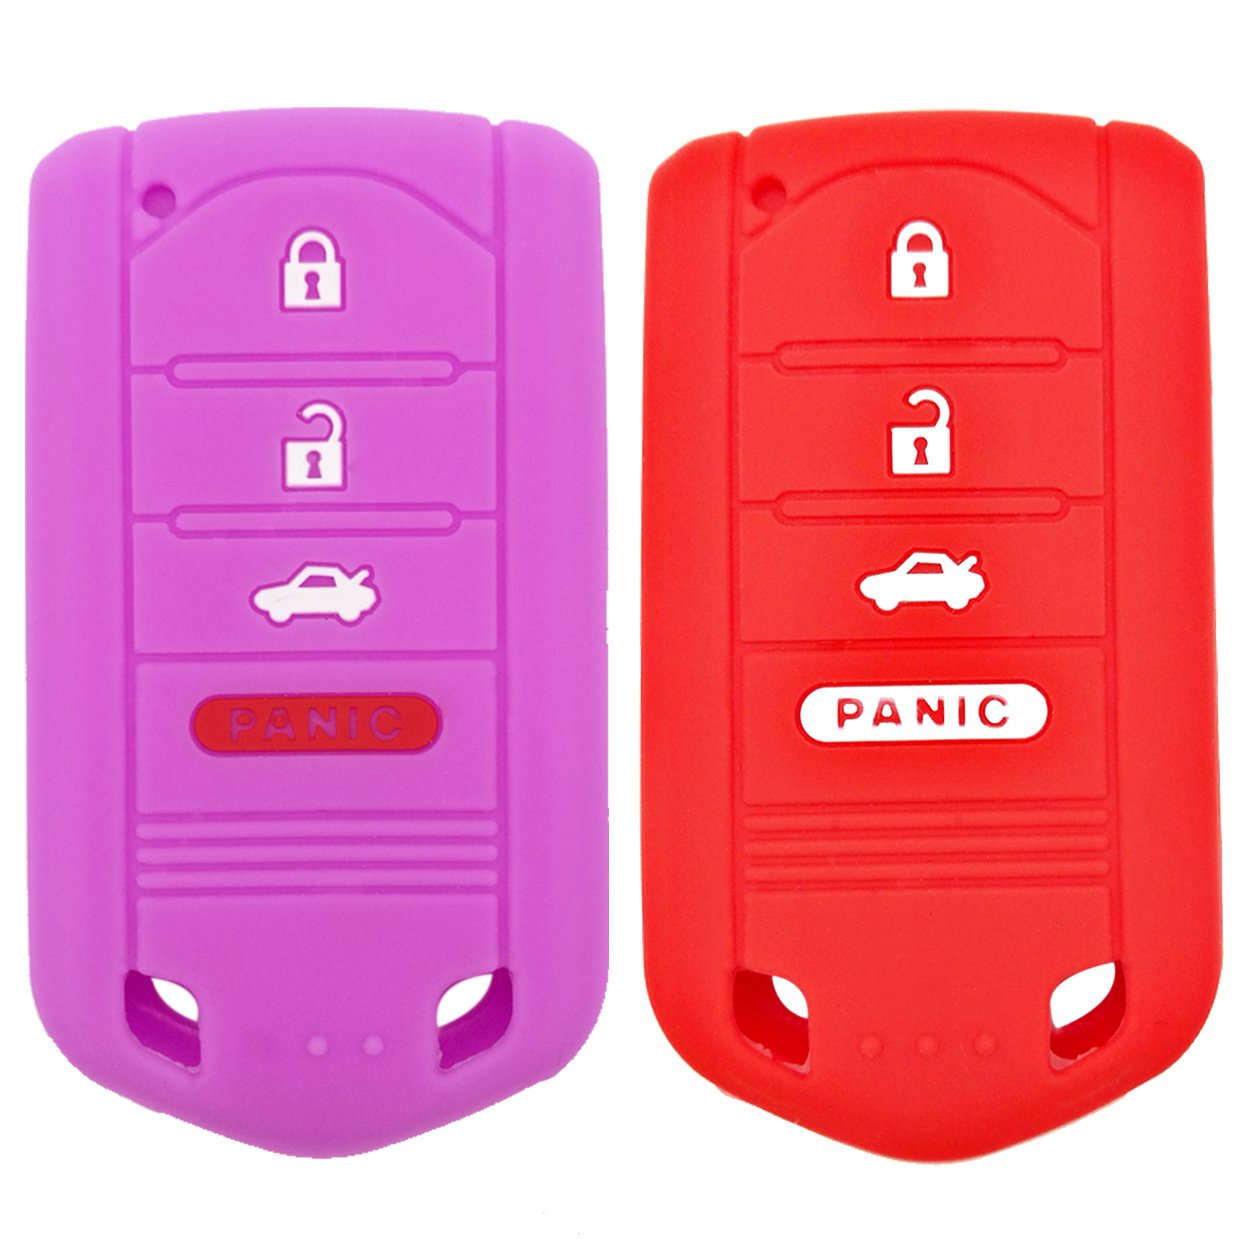 Coolbestda 2Pcs Key Fob Cover Case Protector Remote Control Skin for Acura MDX TL TLX ZDX RDX TSX RL ZD IL M3N5WY8145 Not fit ENGINE HOLD FOB